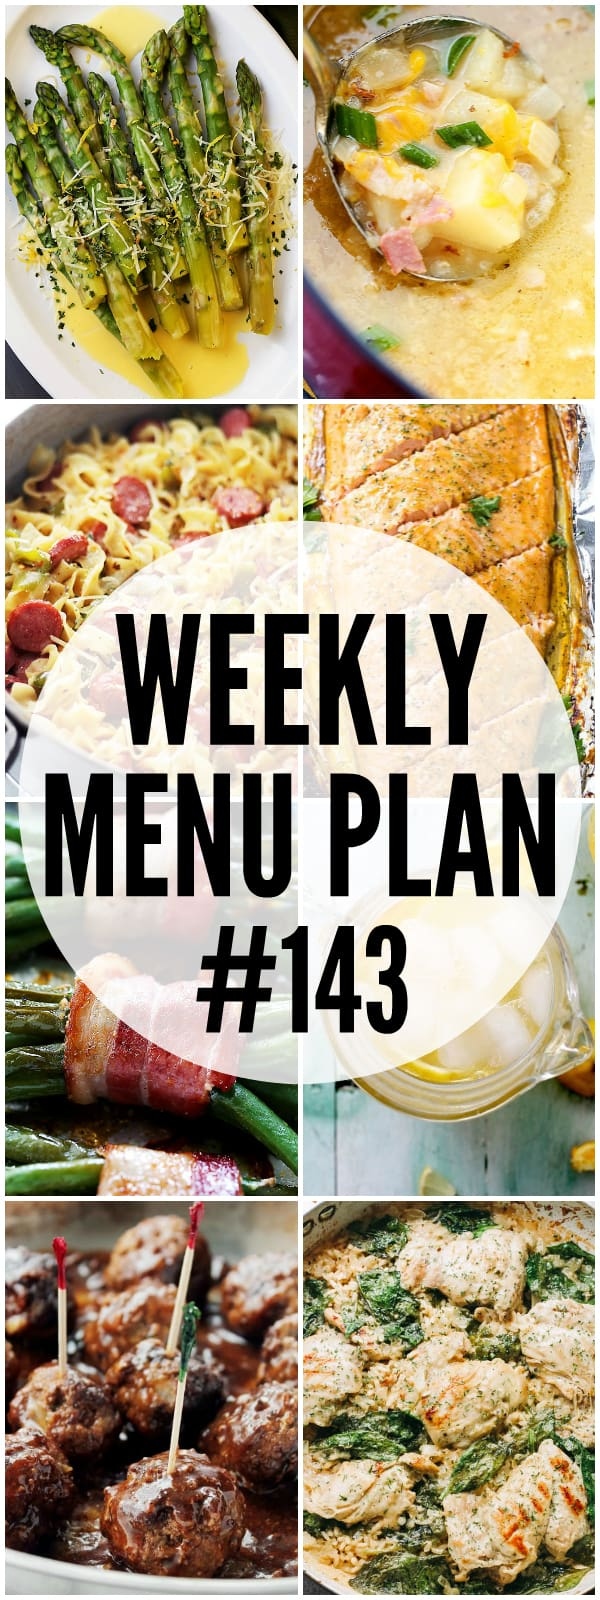 WEEKLY MENU PLAN (#143) - A delicious collection of dinner, side dish and dessert recipes to help you plan your weekly menu and make life easier for you!